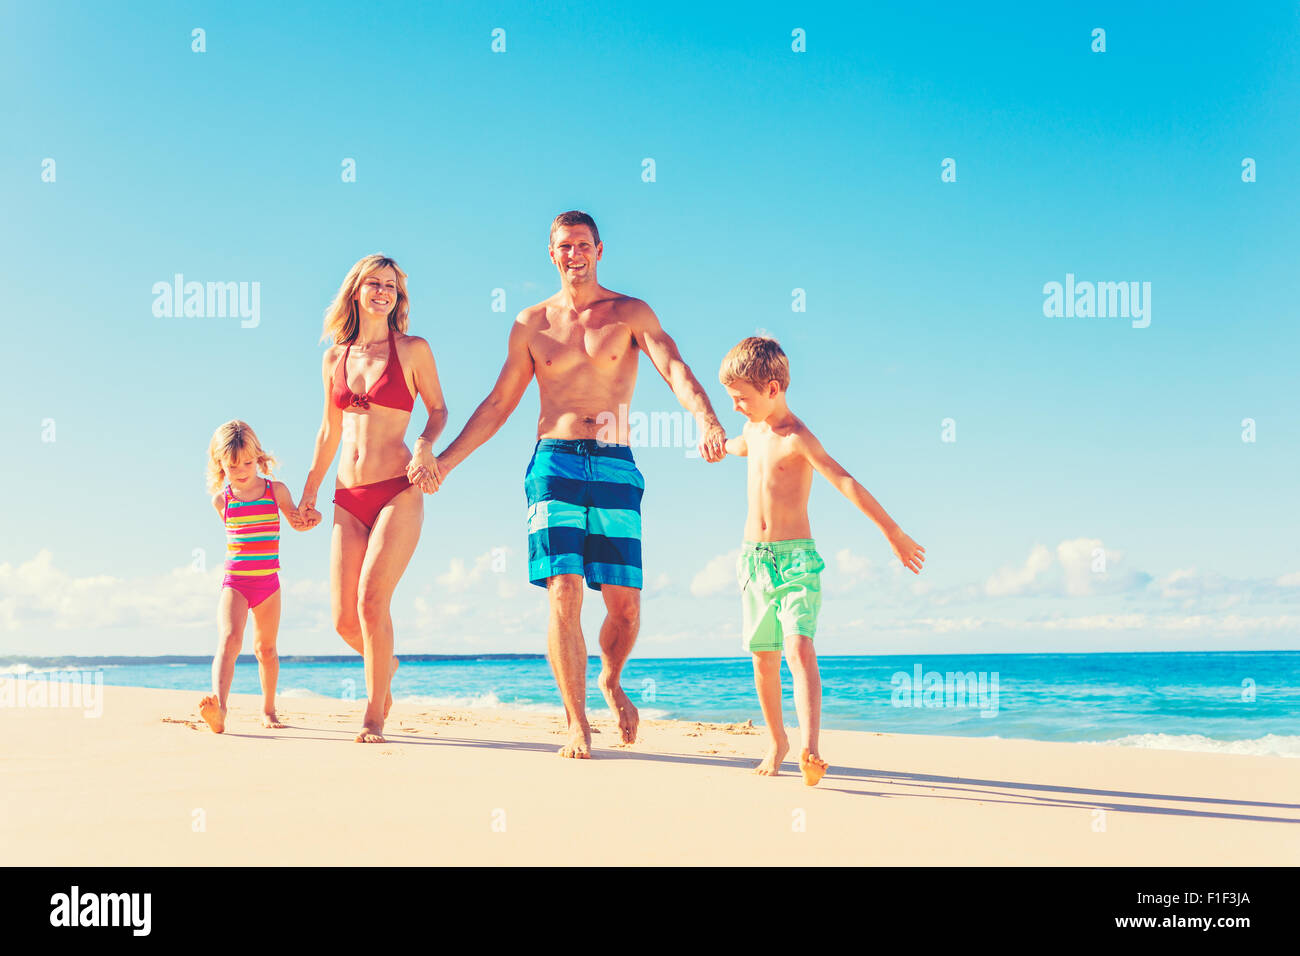 Family vacation. Happy family having fun on beautiful warm sunny beach. Summer lifestyle - Stock Image